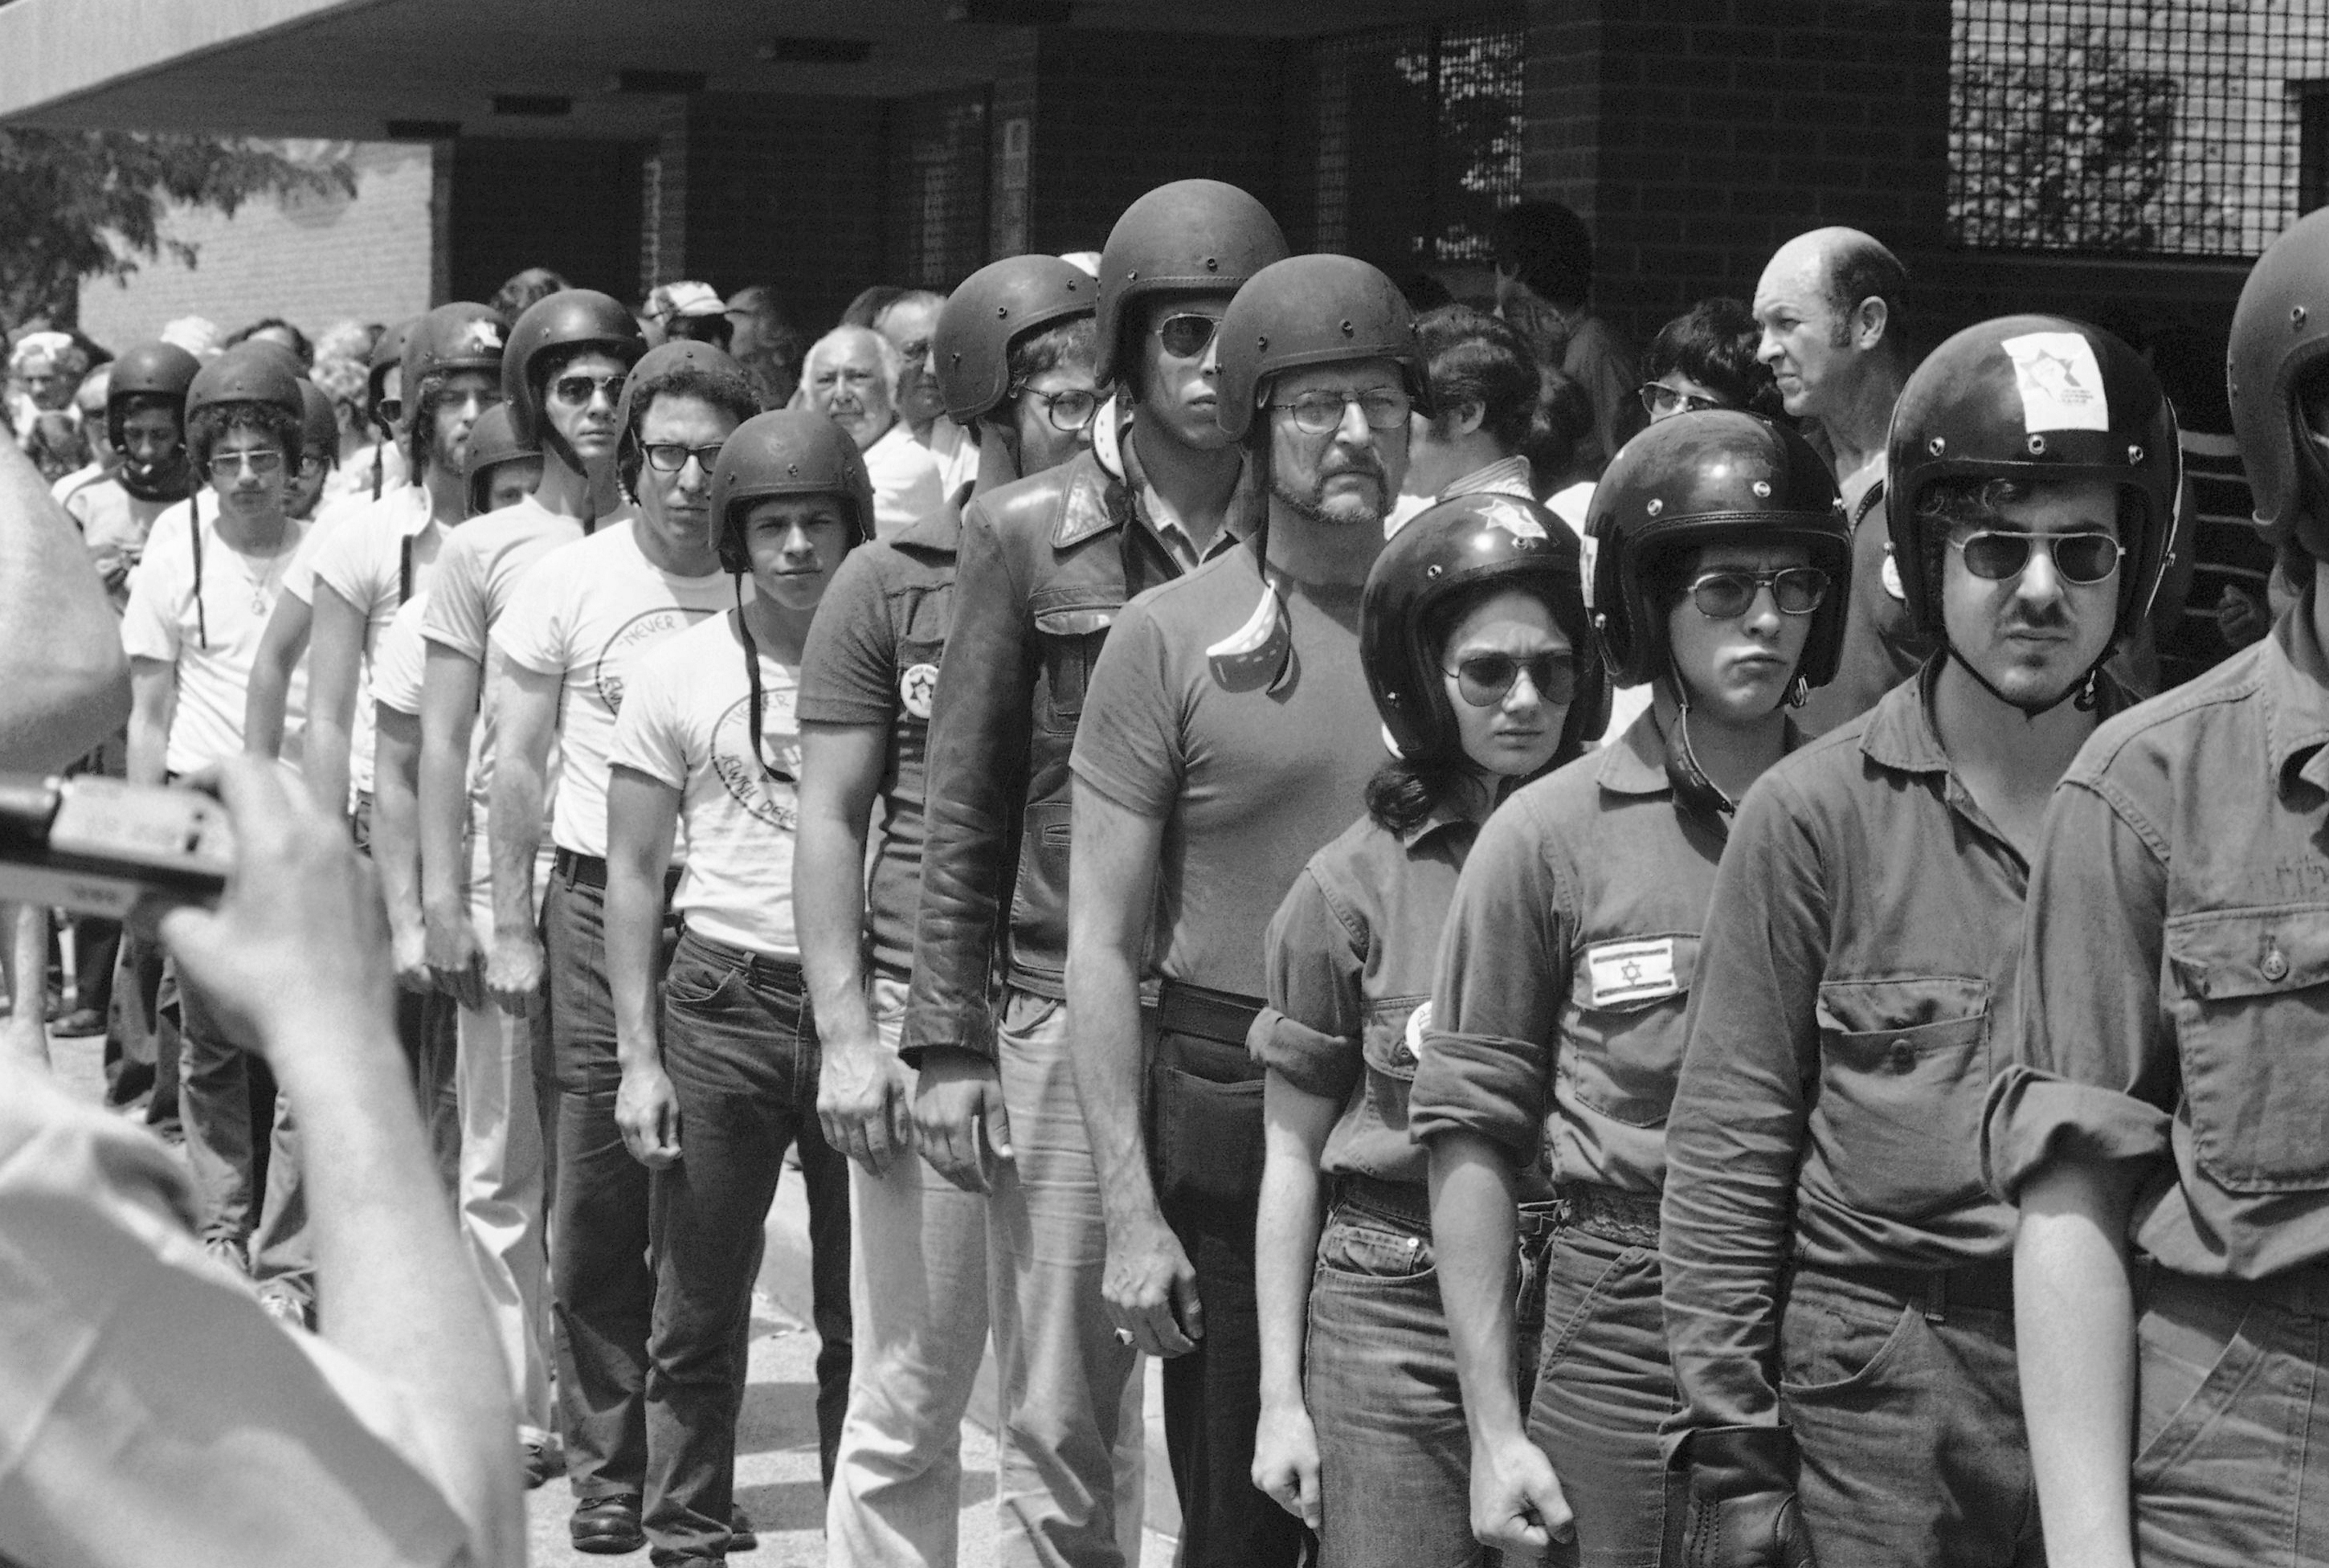 Members of the Jewish Defense League donned helmets as they arrived in Skokie, Ill. on July 4, 1977 to demonstrate against the Nazis, who called off their march when they failed to get a permit. (AP/CEK)